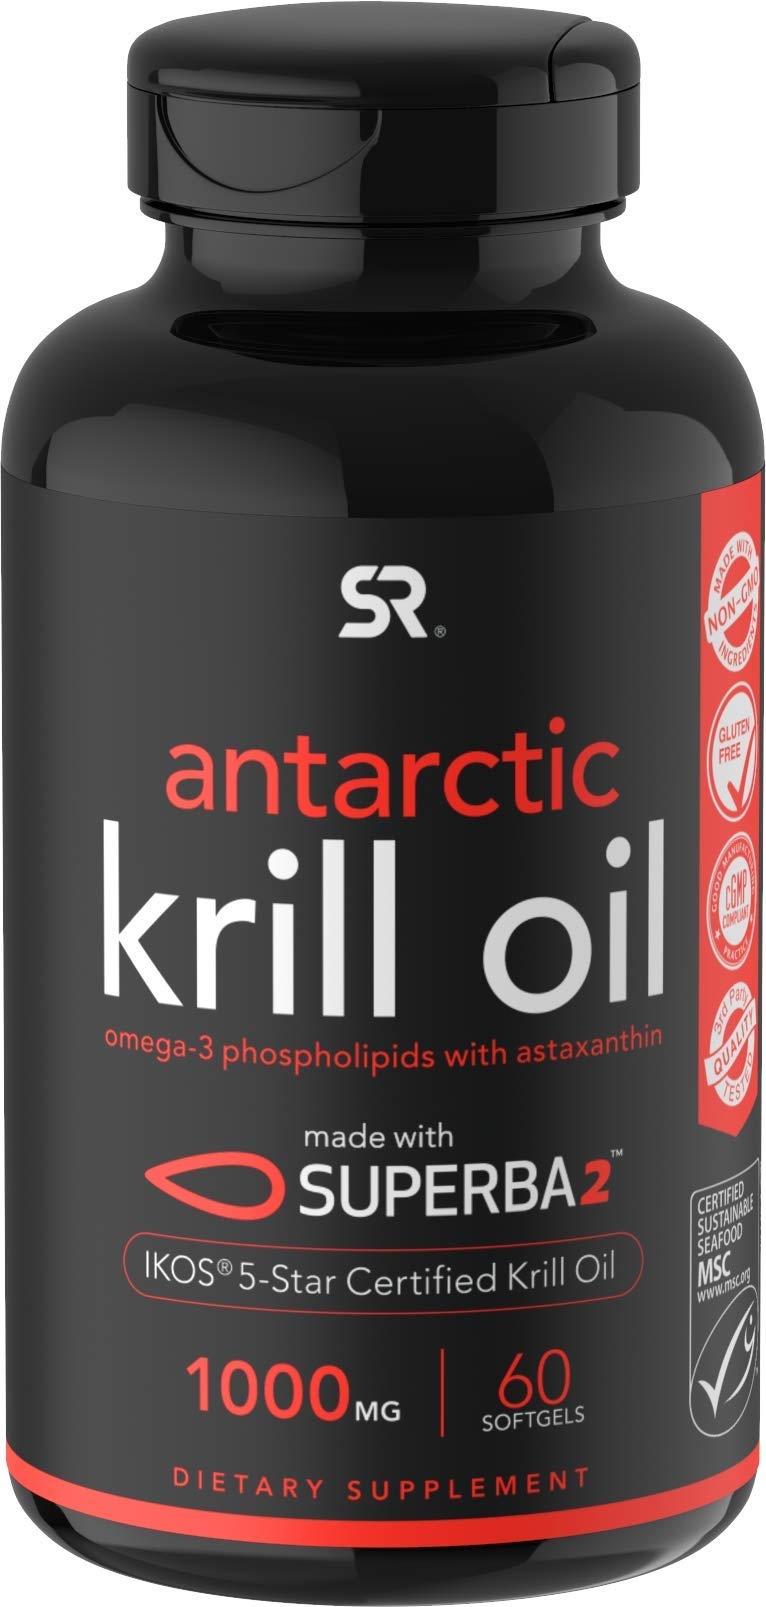 Antarctic Krill Oil (1000mg) with Omega-3s EPA & DHA + Astaxanthin | IKOS 5-Star Certified & Non-GMO Verified (60 Softgels)